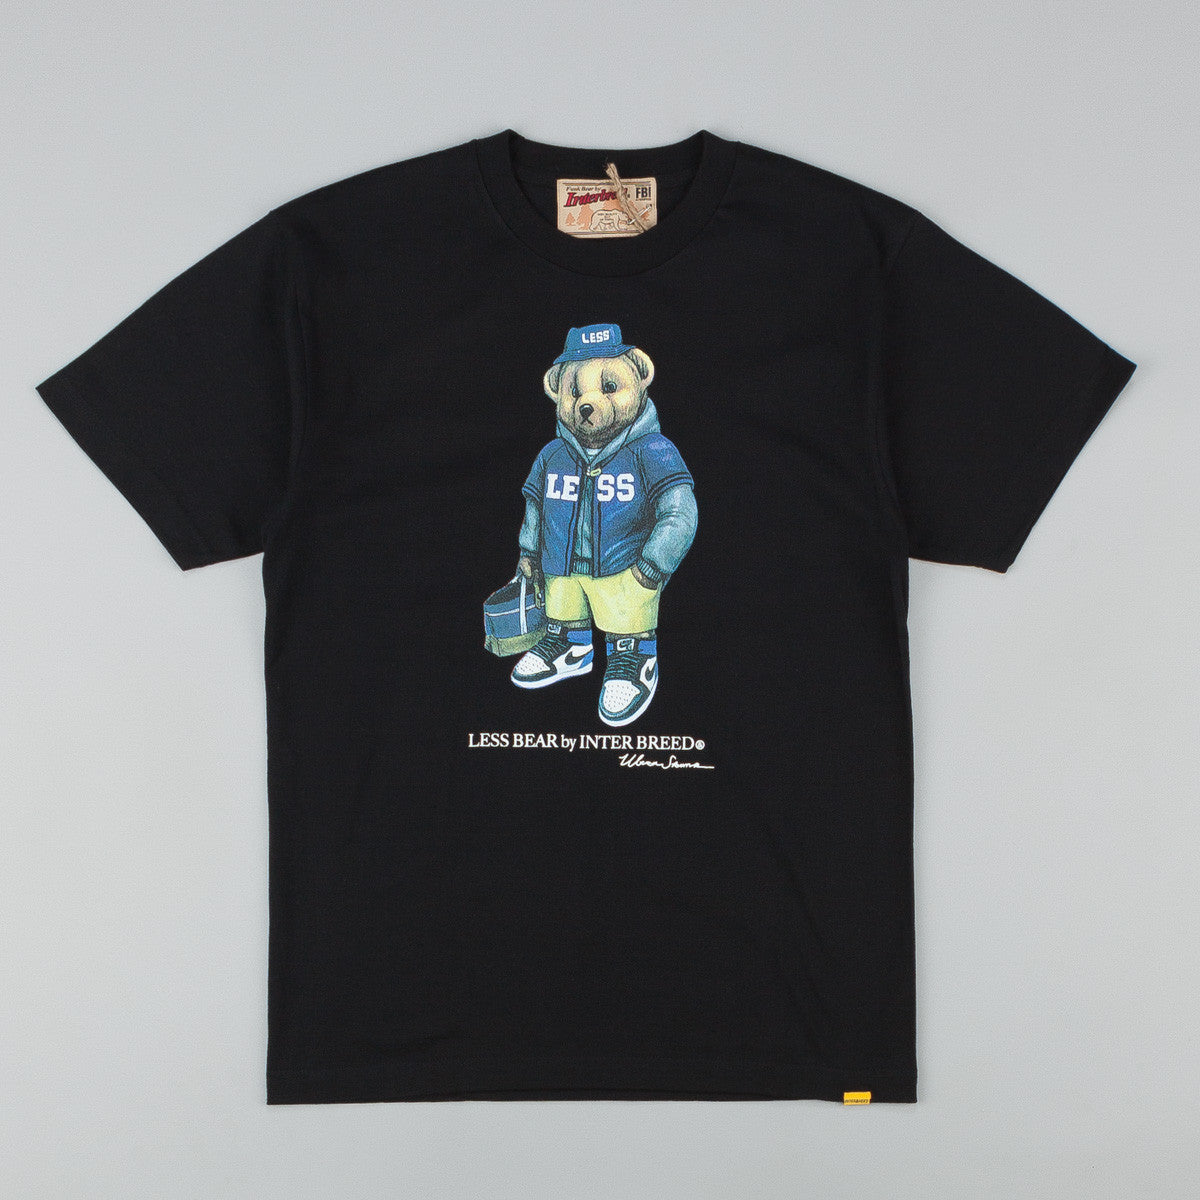 Less x Interbreed Bear T-Shirt - Black